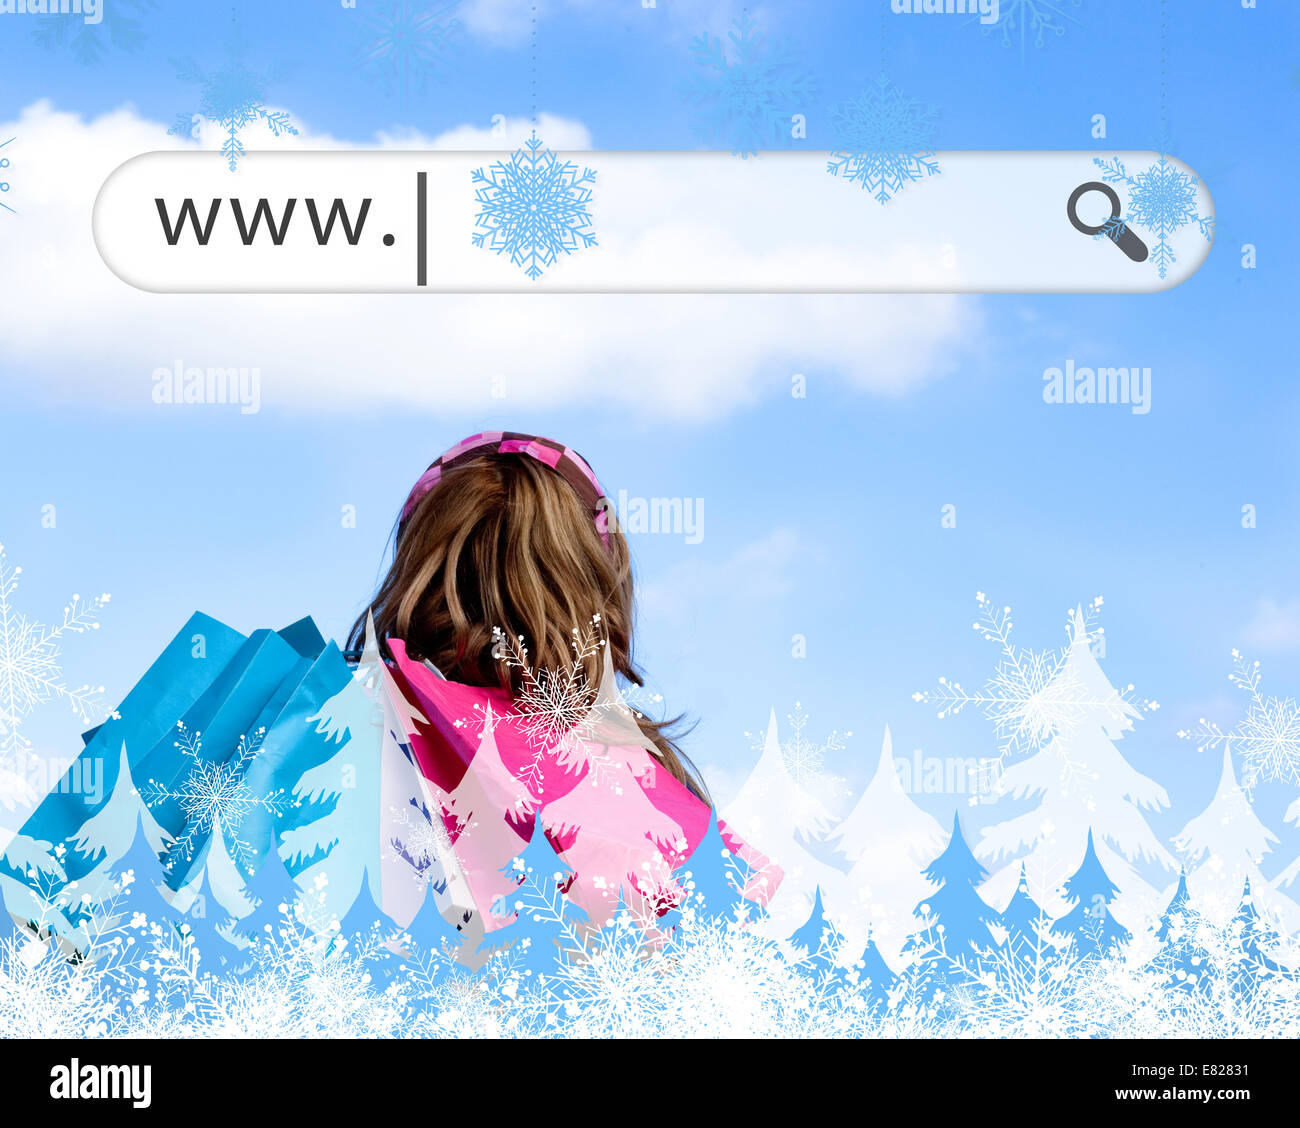 Girl holding shopping bags with address bar above - Stock Image